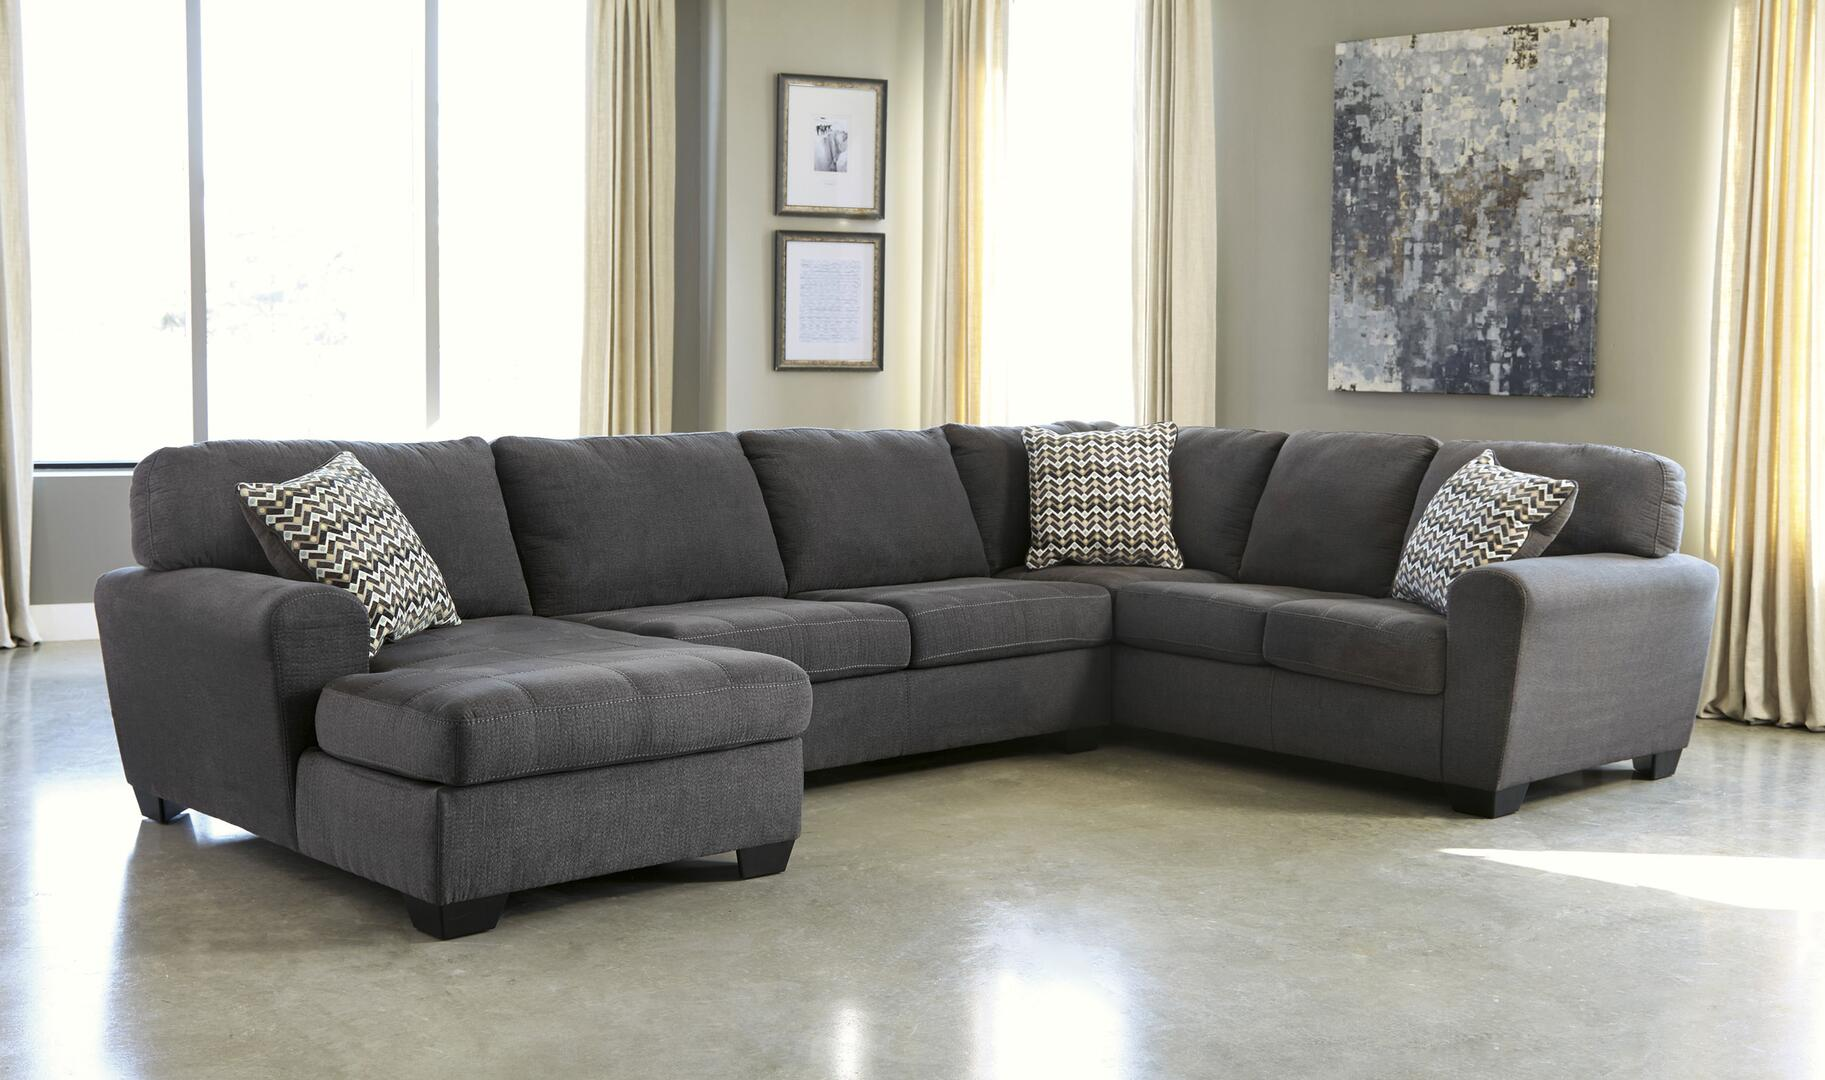 Benchcraft Sorenton Series Stationary Fabric Sofa